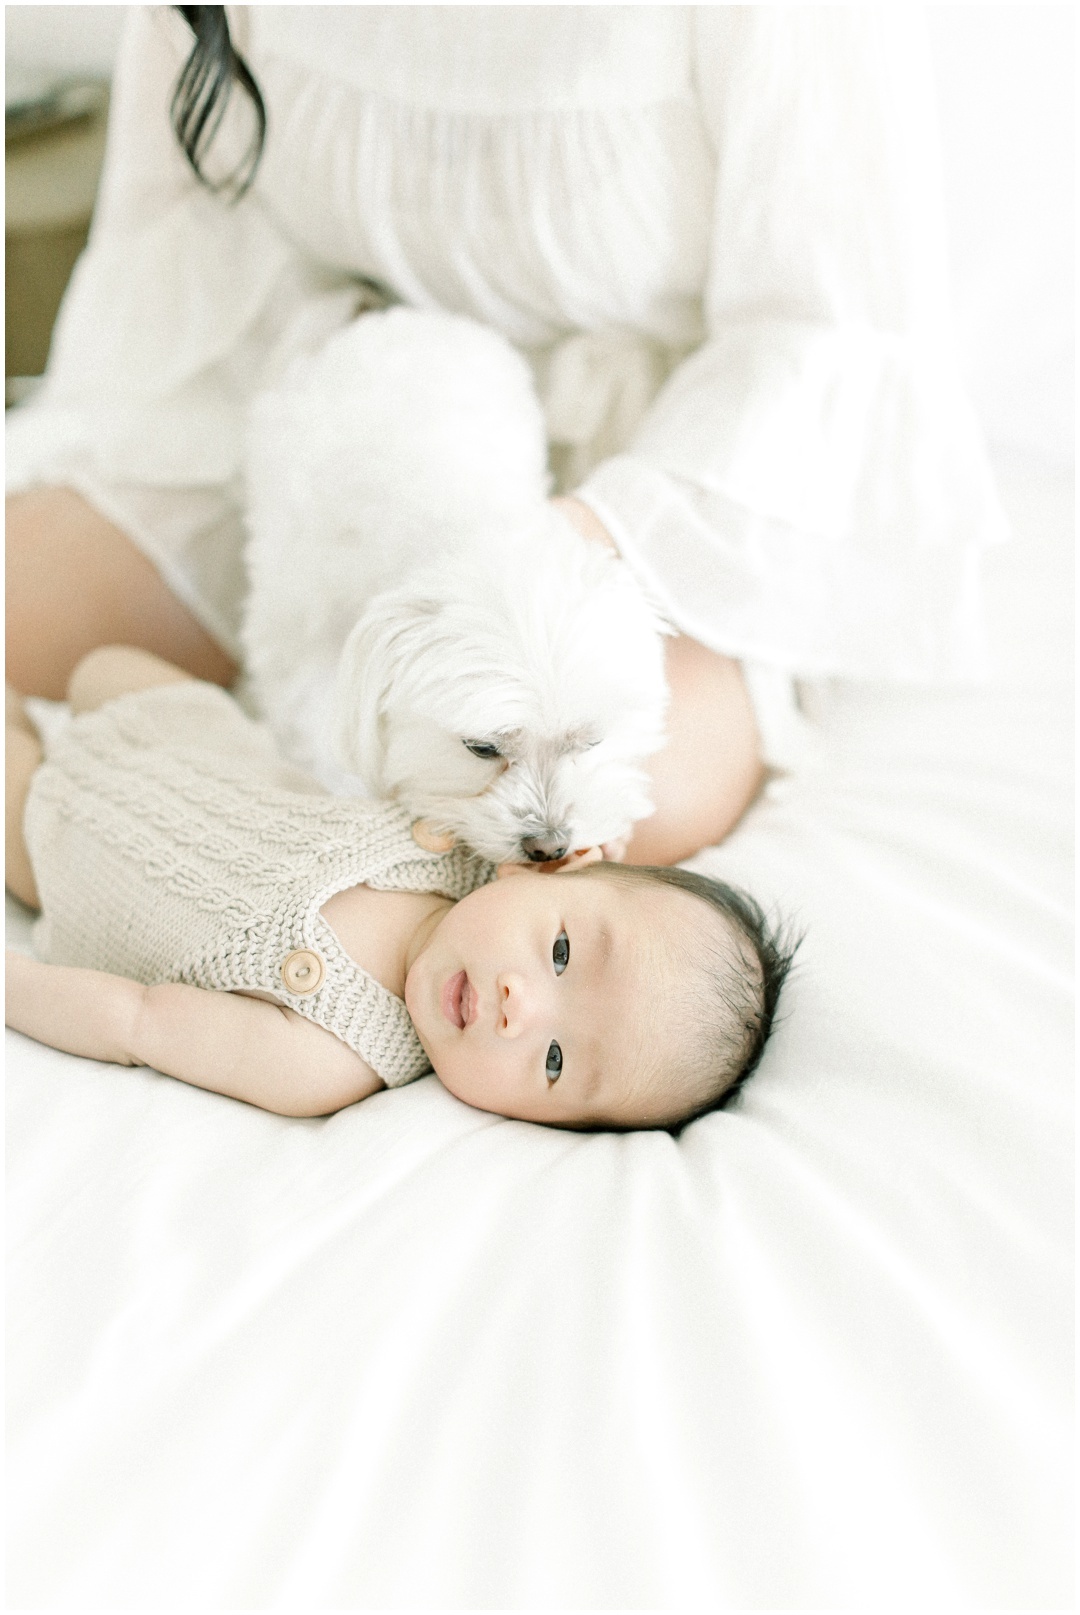 Orange_County_Maternity_Photographer_Newport_Beach_Family_Photographer_Newport_Beach_Newborn_Photographer_Orange_County_Family_Photographer_Cori_Kleckner_Photography_Huntington_Beach_Photographer_Karen_Liao_Family_2575.jpg